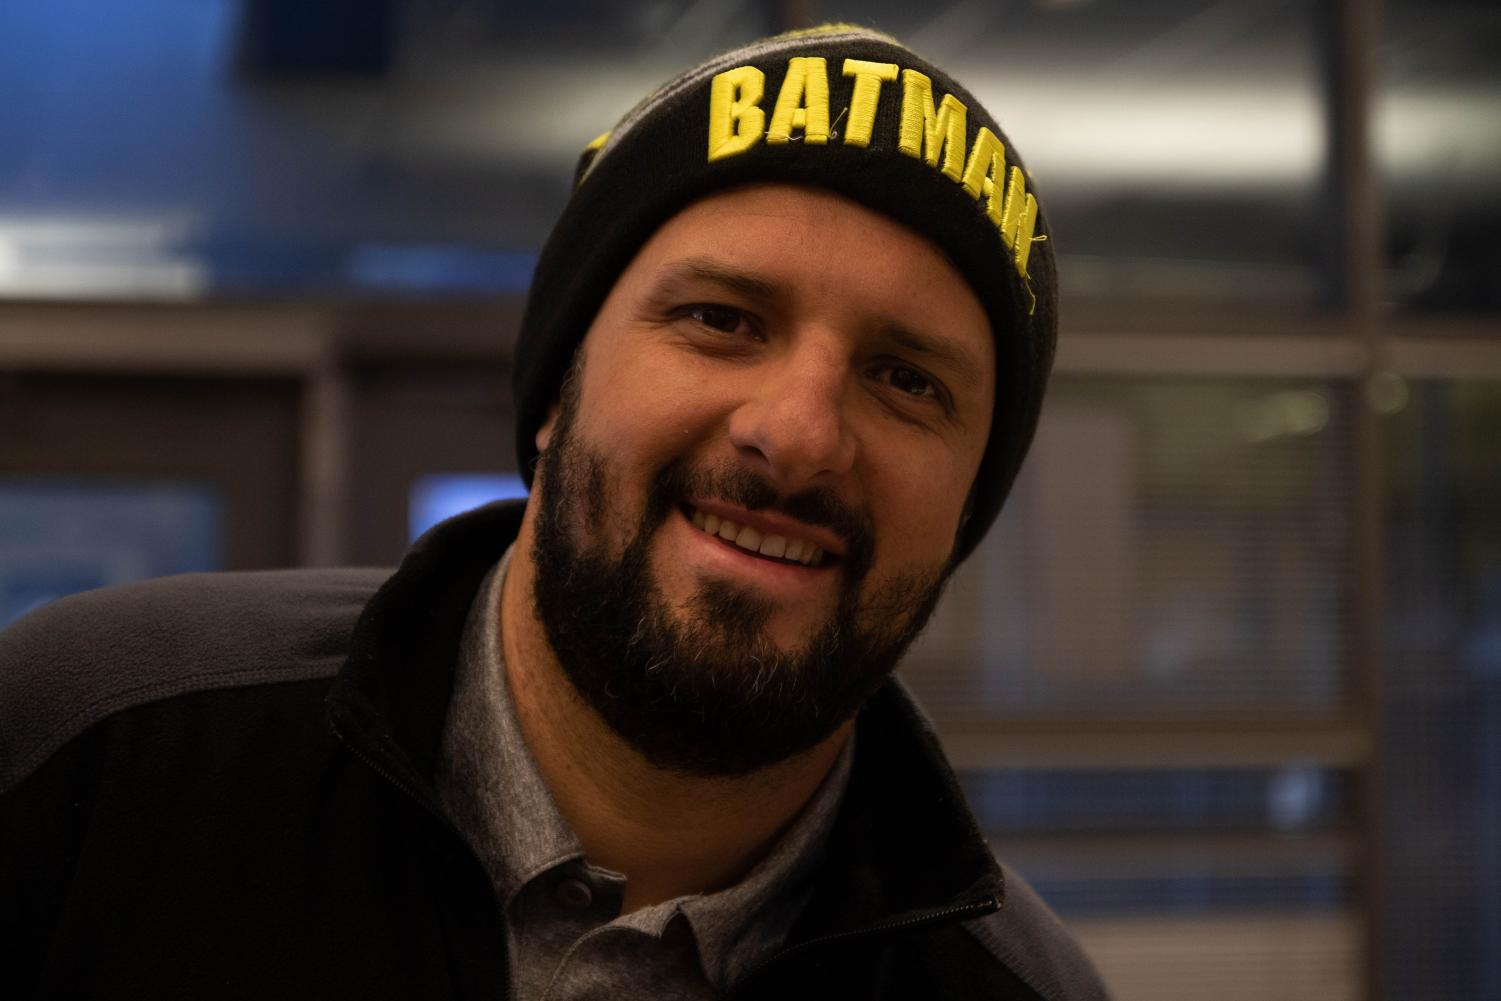 Paul Gutierrez smiling for the camera wearing a beanie of his favorite superhero.